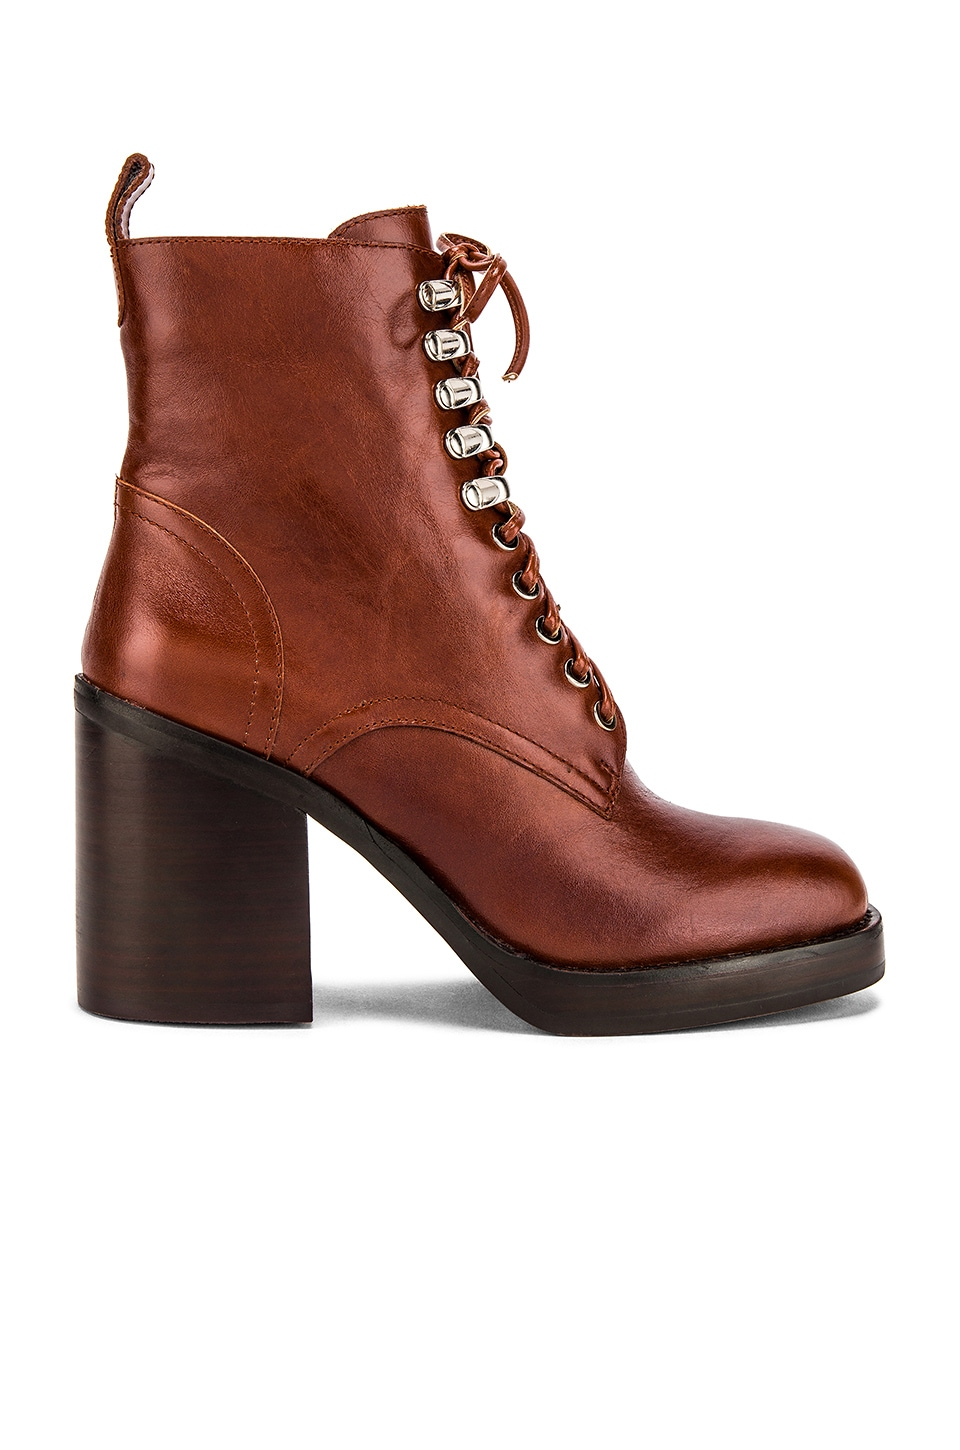 Jeffrey Campbell Dotti Bootie in Tan Dark Brown